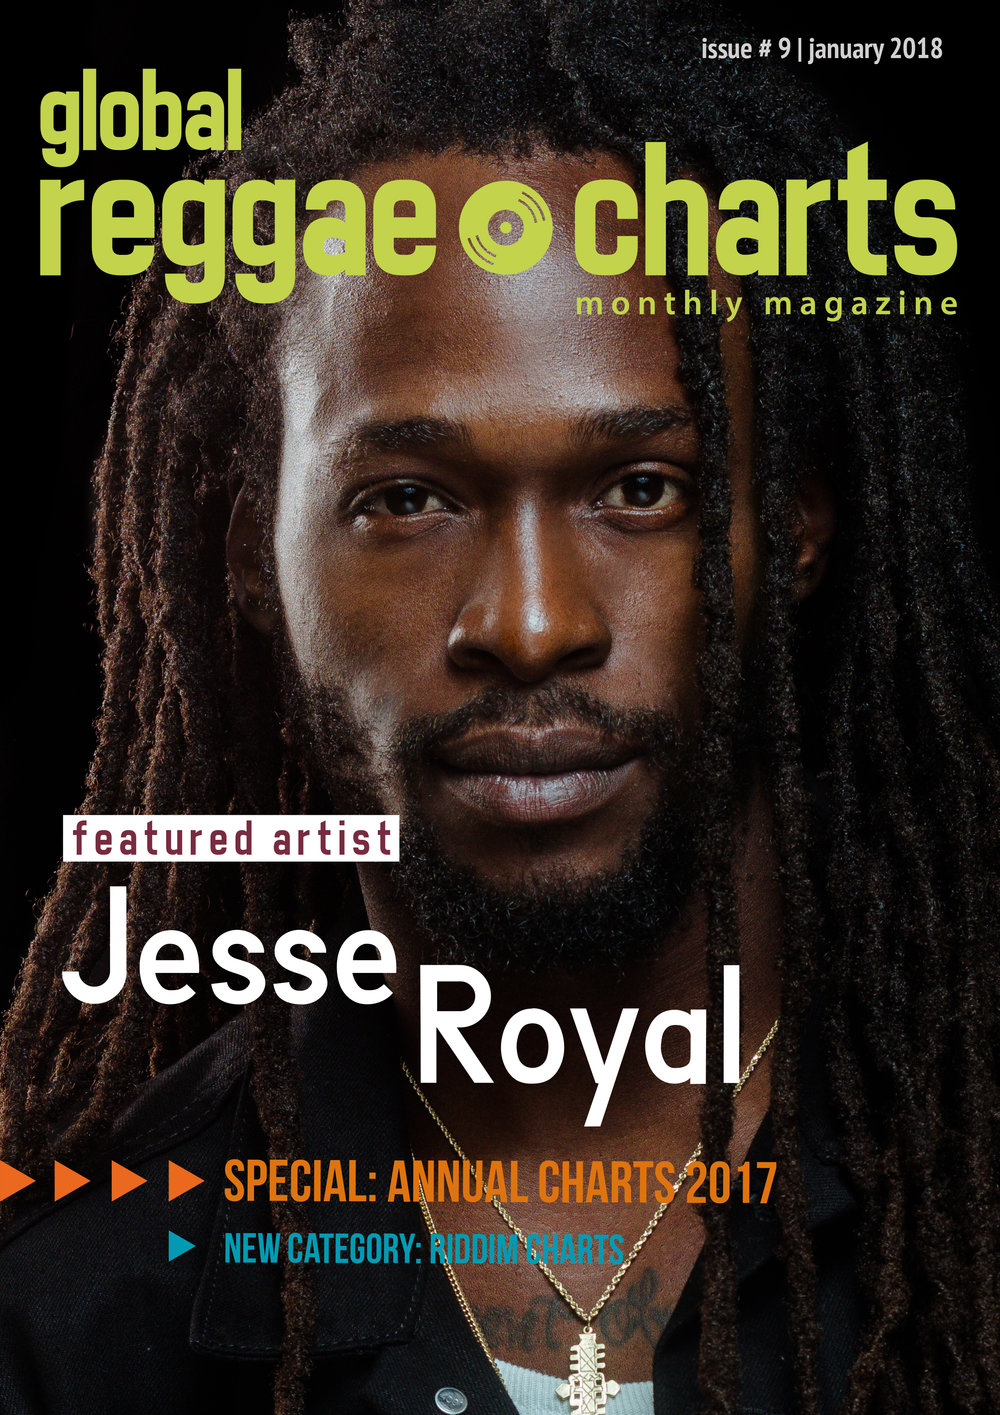 Global Reggae Charts - Issue #9 _ January 2018-1.jpg